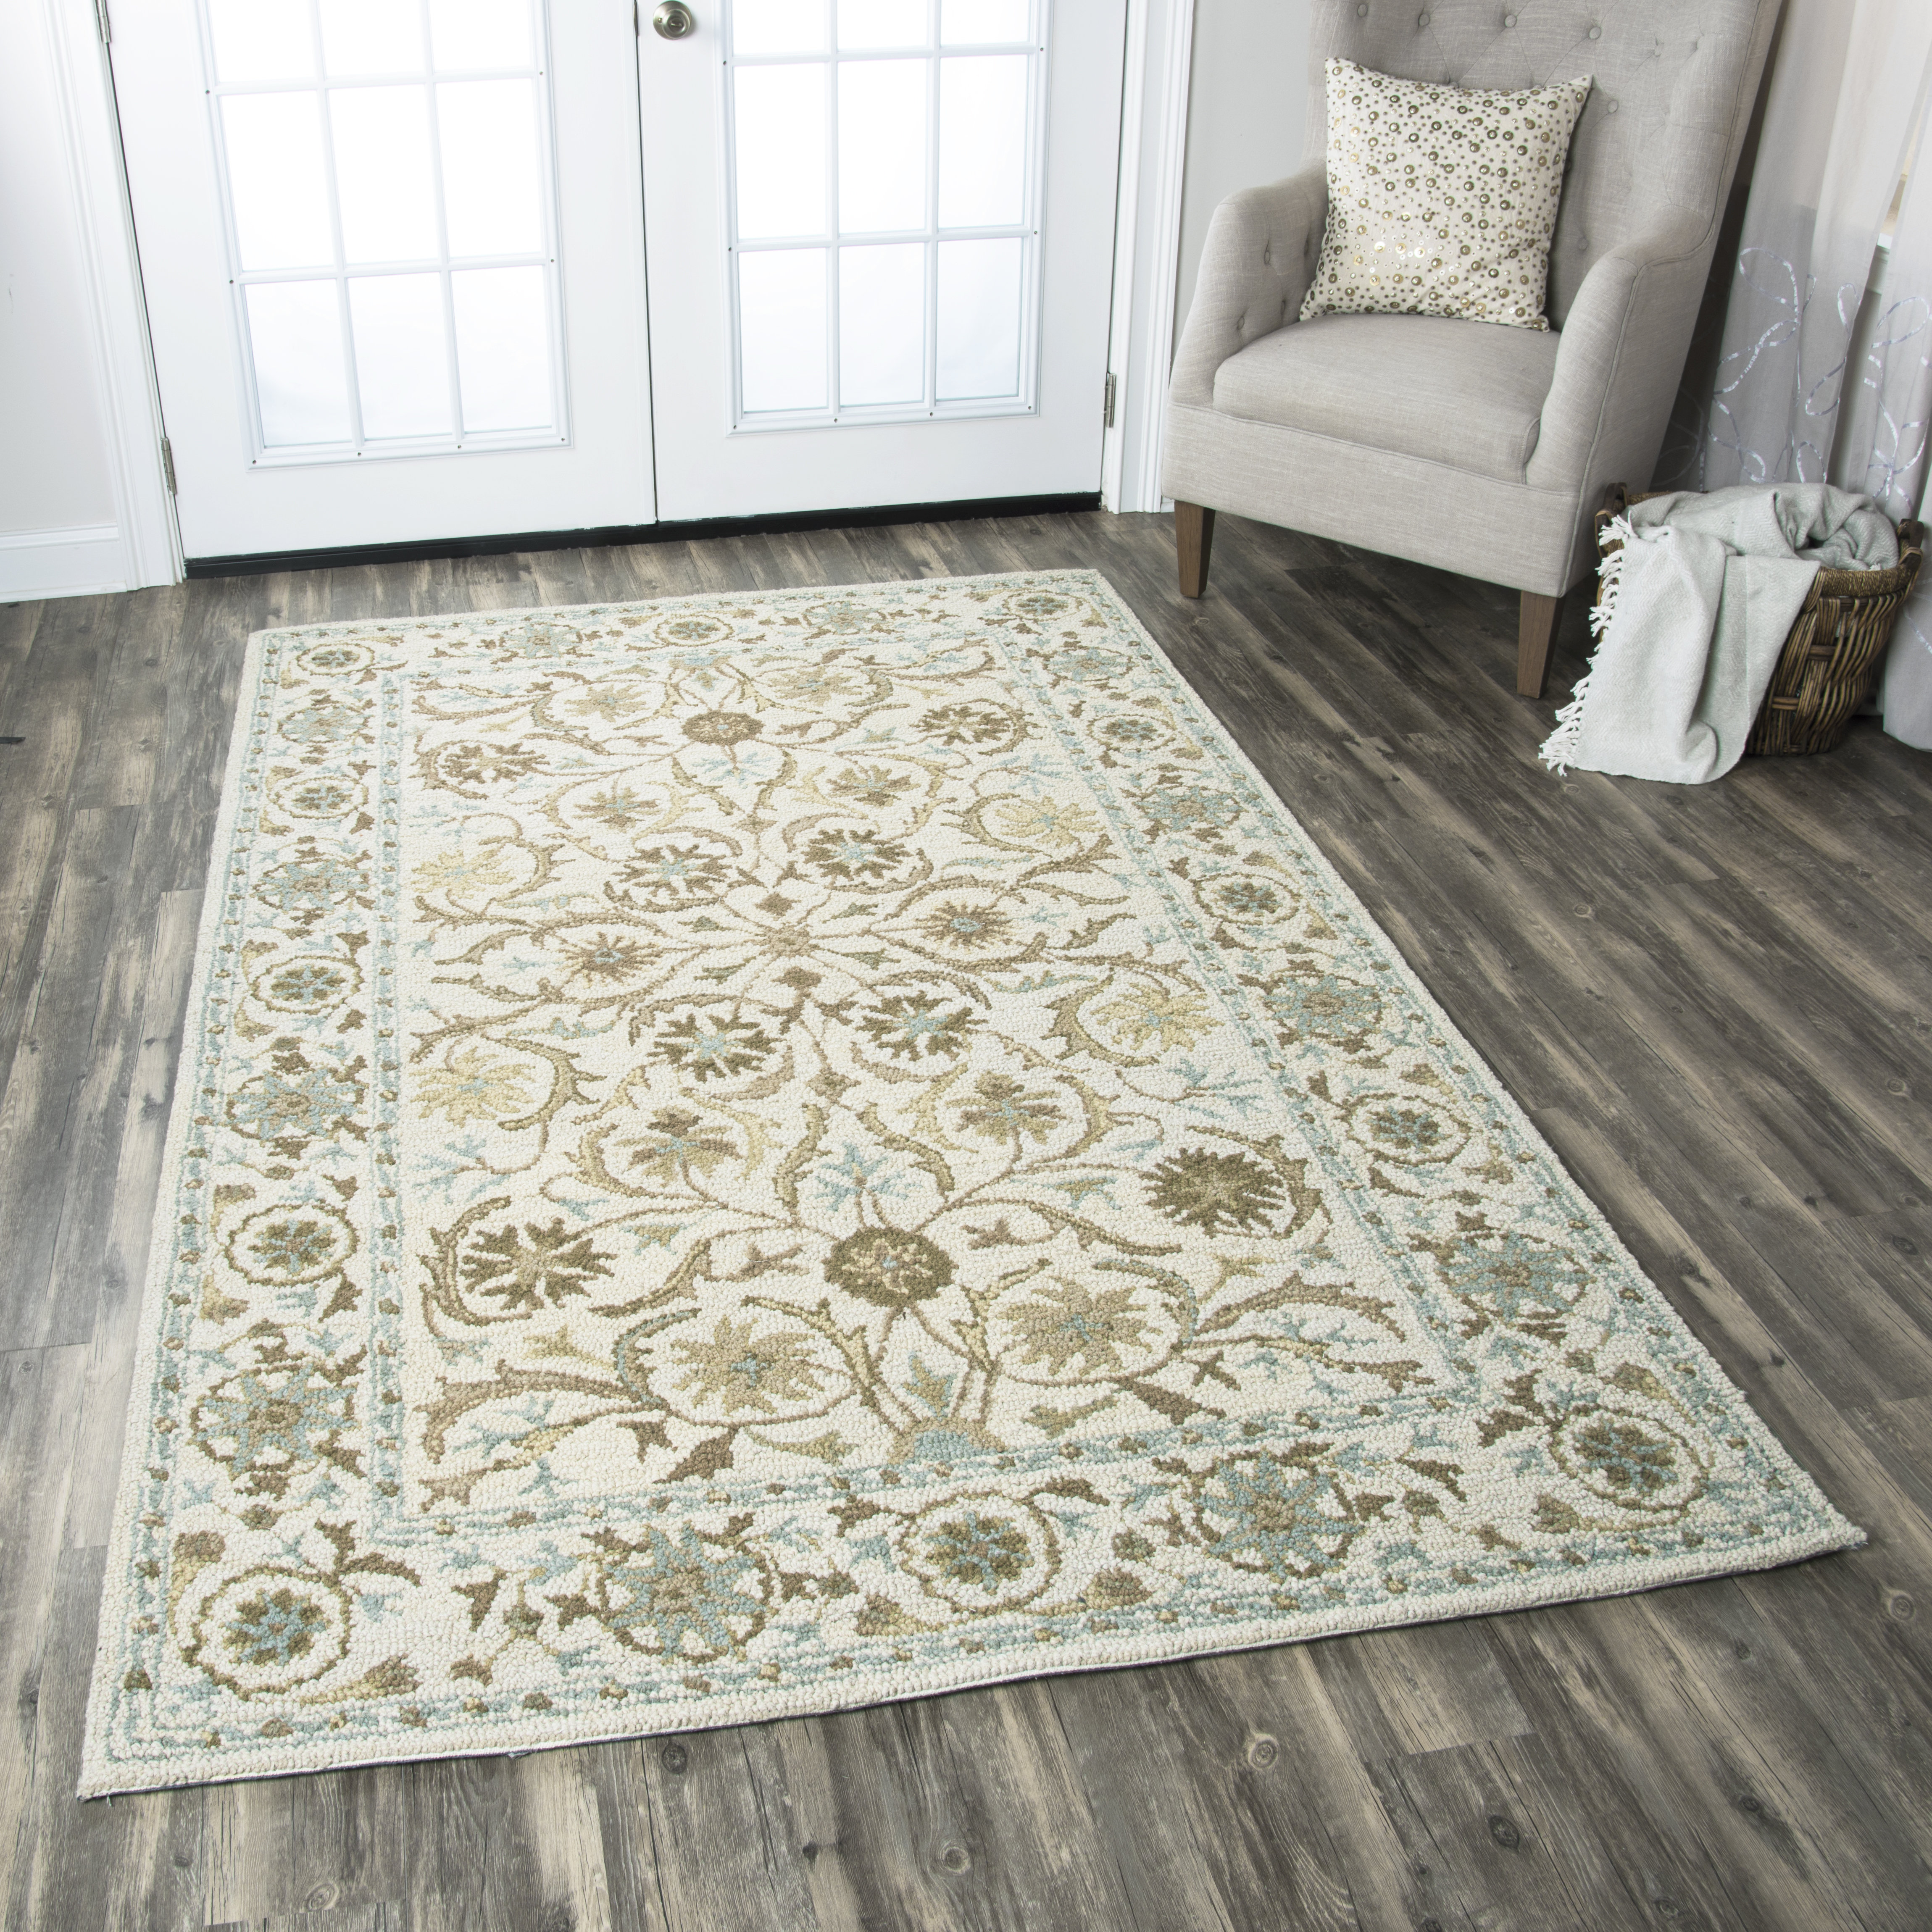 wool area rugs birch lane™ suzanne tufted wool area rug u0026 reviews | birch lane IZFYUKC